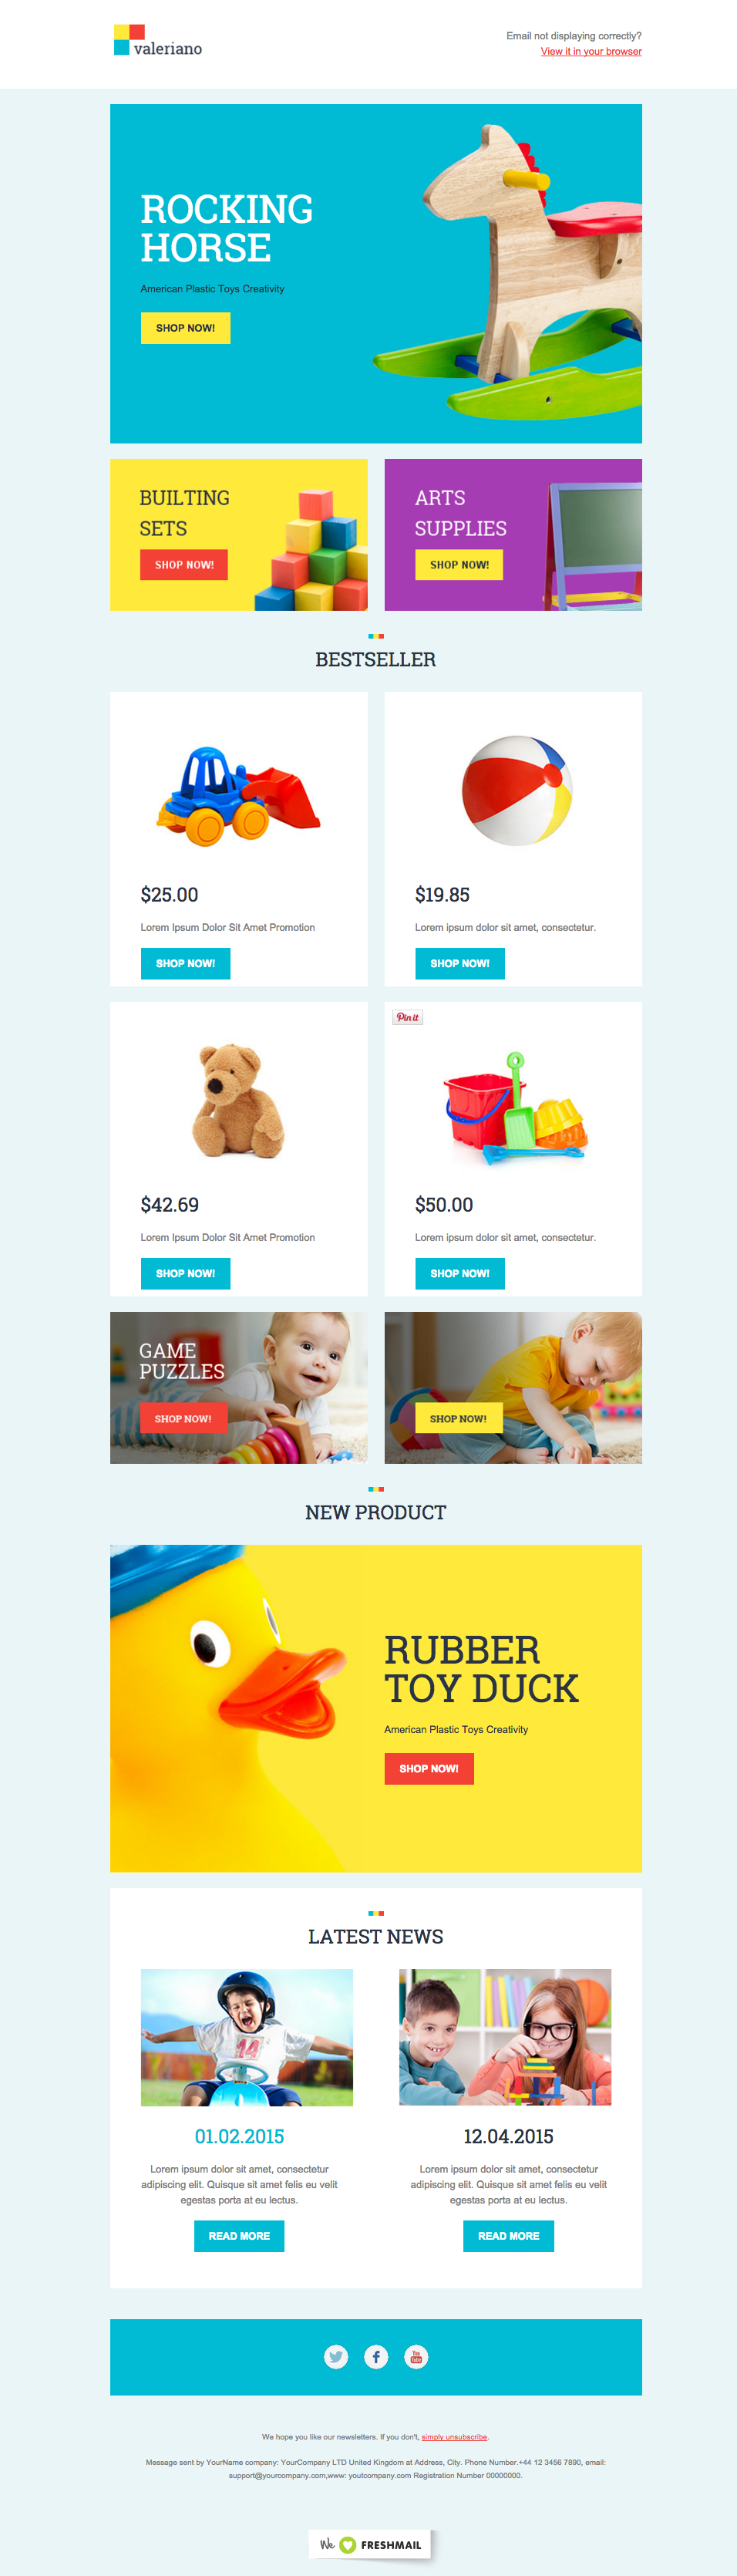 Toys for kids logo  Toys for kids ecommerce newsletter template for free FreshMail